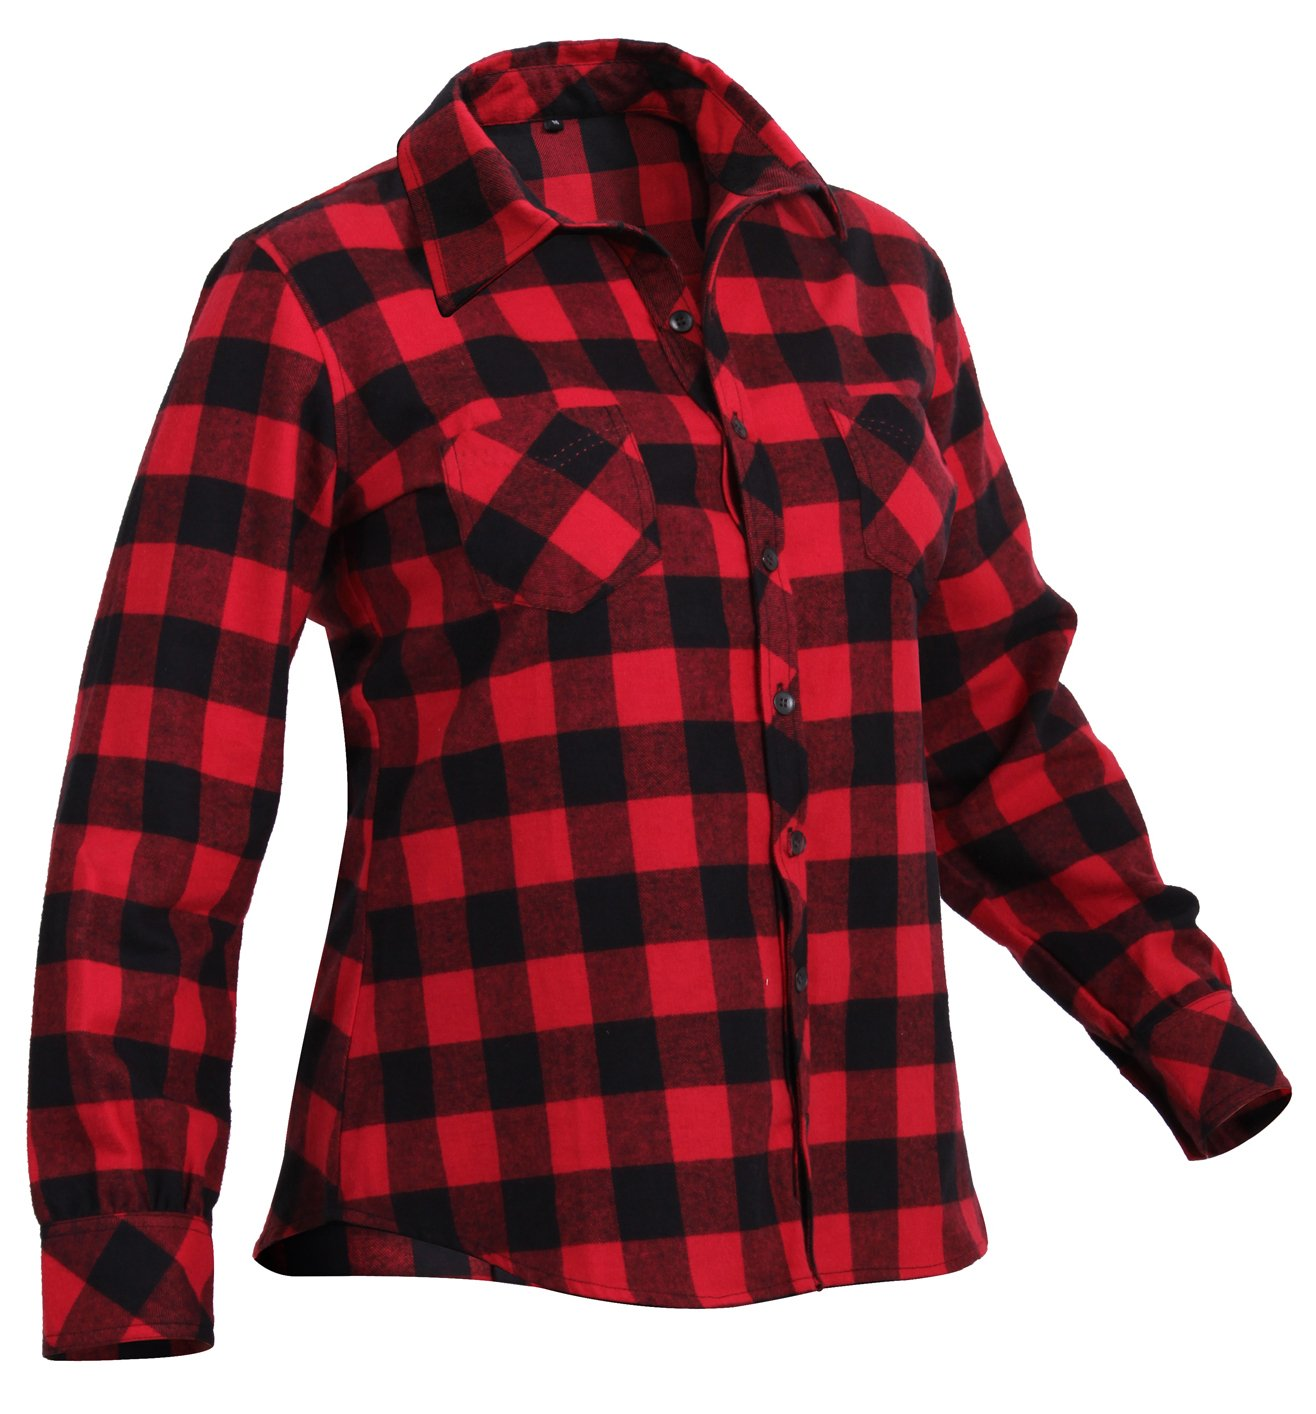 Rothco Womens Plaid Flannel Shirt, L, Red/Black by Rothco